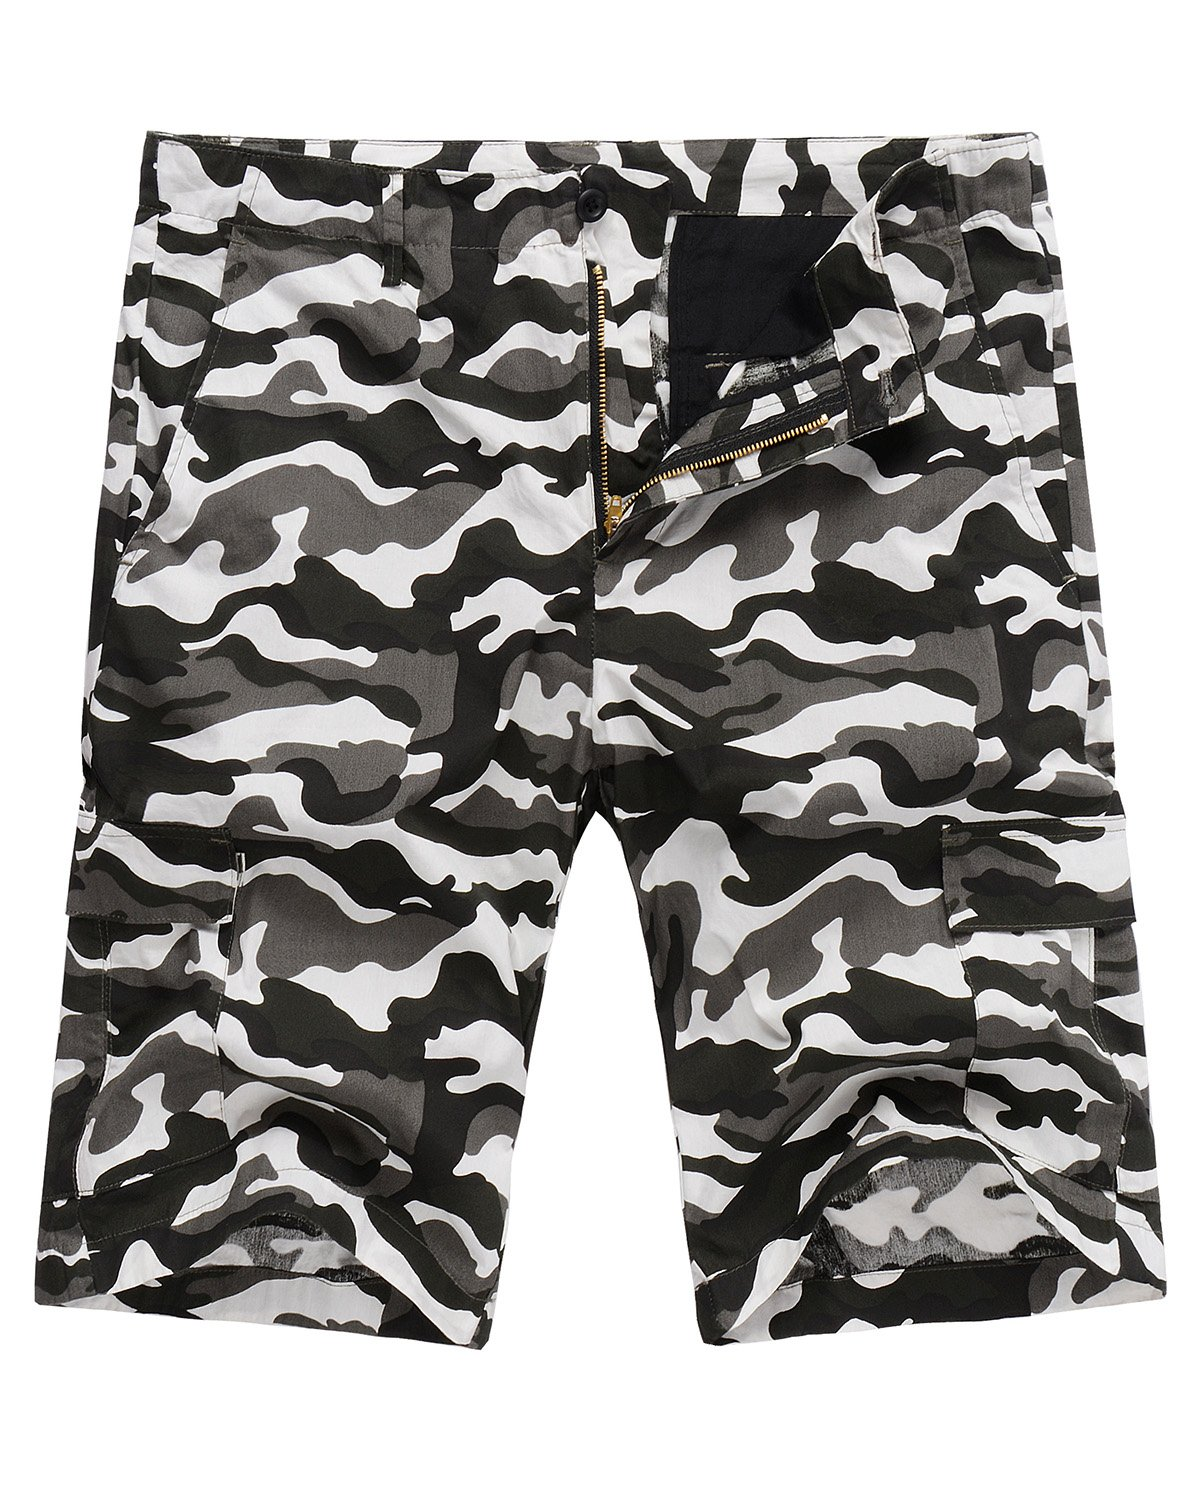 Hanmor Men's Casual Loose Fit Cotton Tactical Camouflage Cargo Shorts with Multi Pockets Black Camo 32